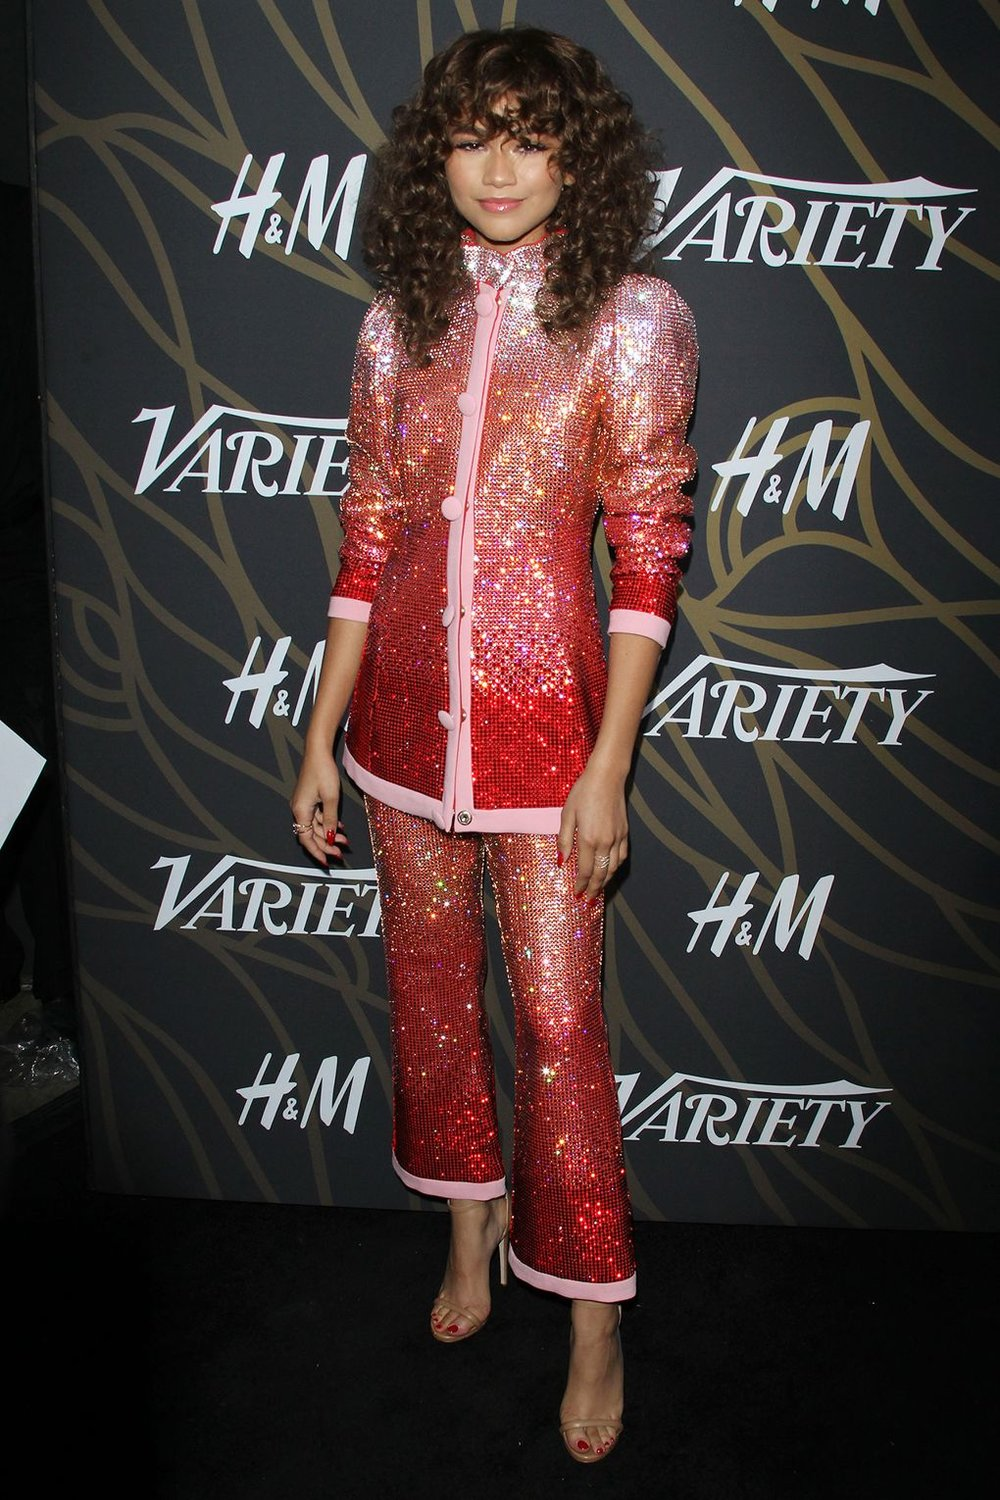 Actress Zendaya at Variety's 'Power of Young Hollywood' event / Image credit: Glamour Magazine